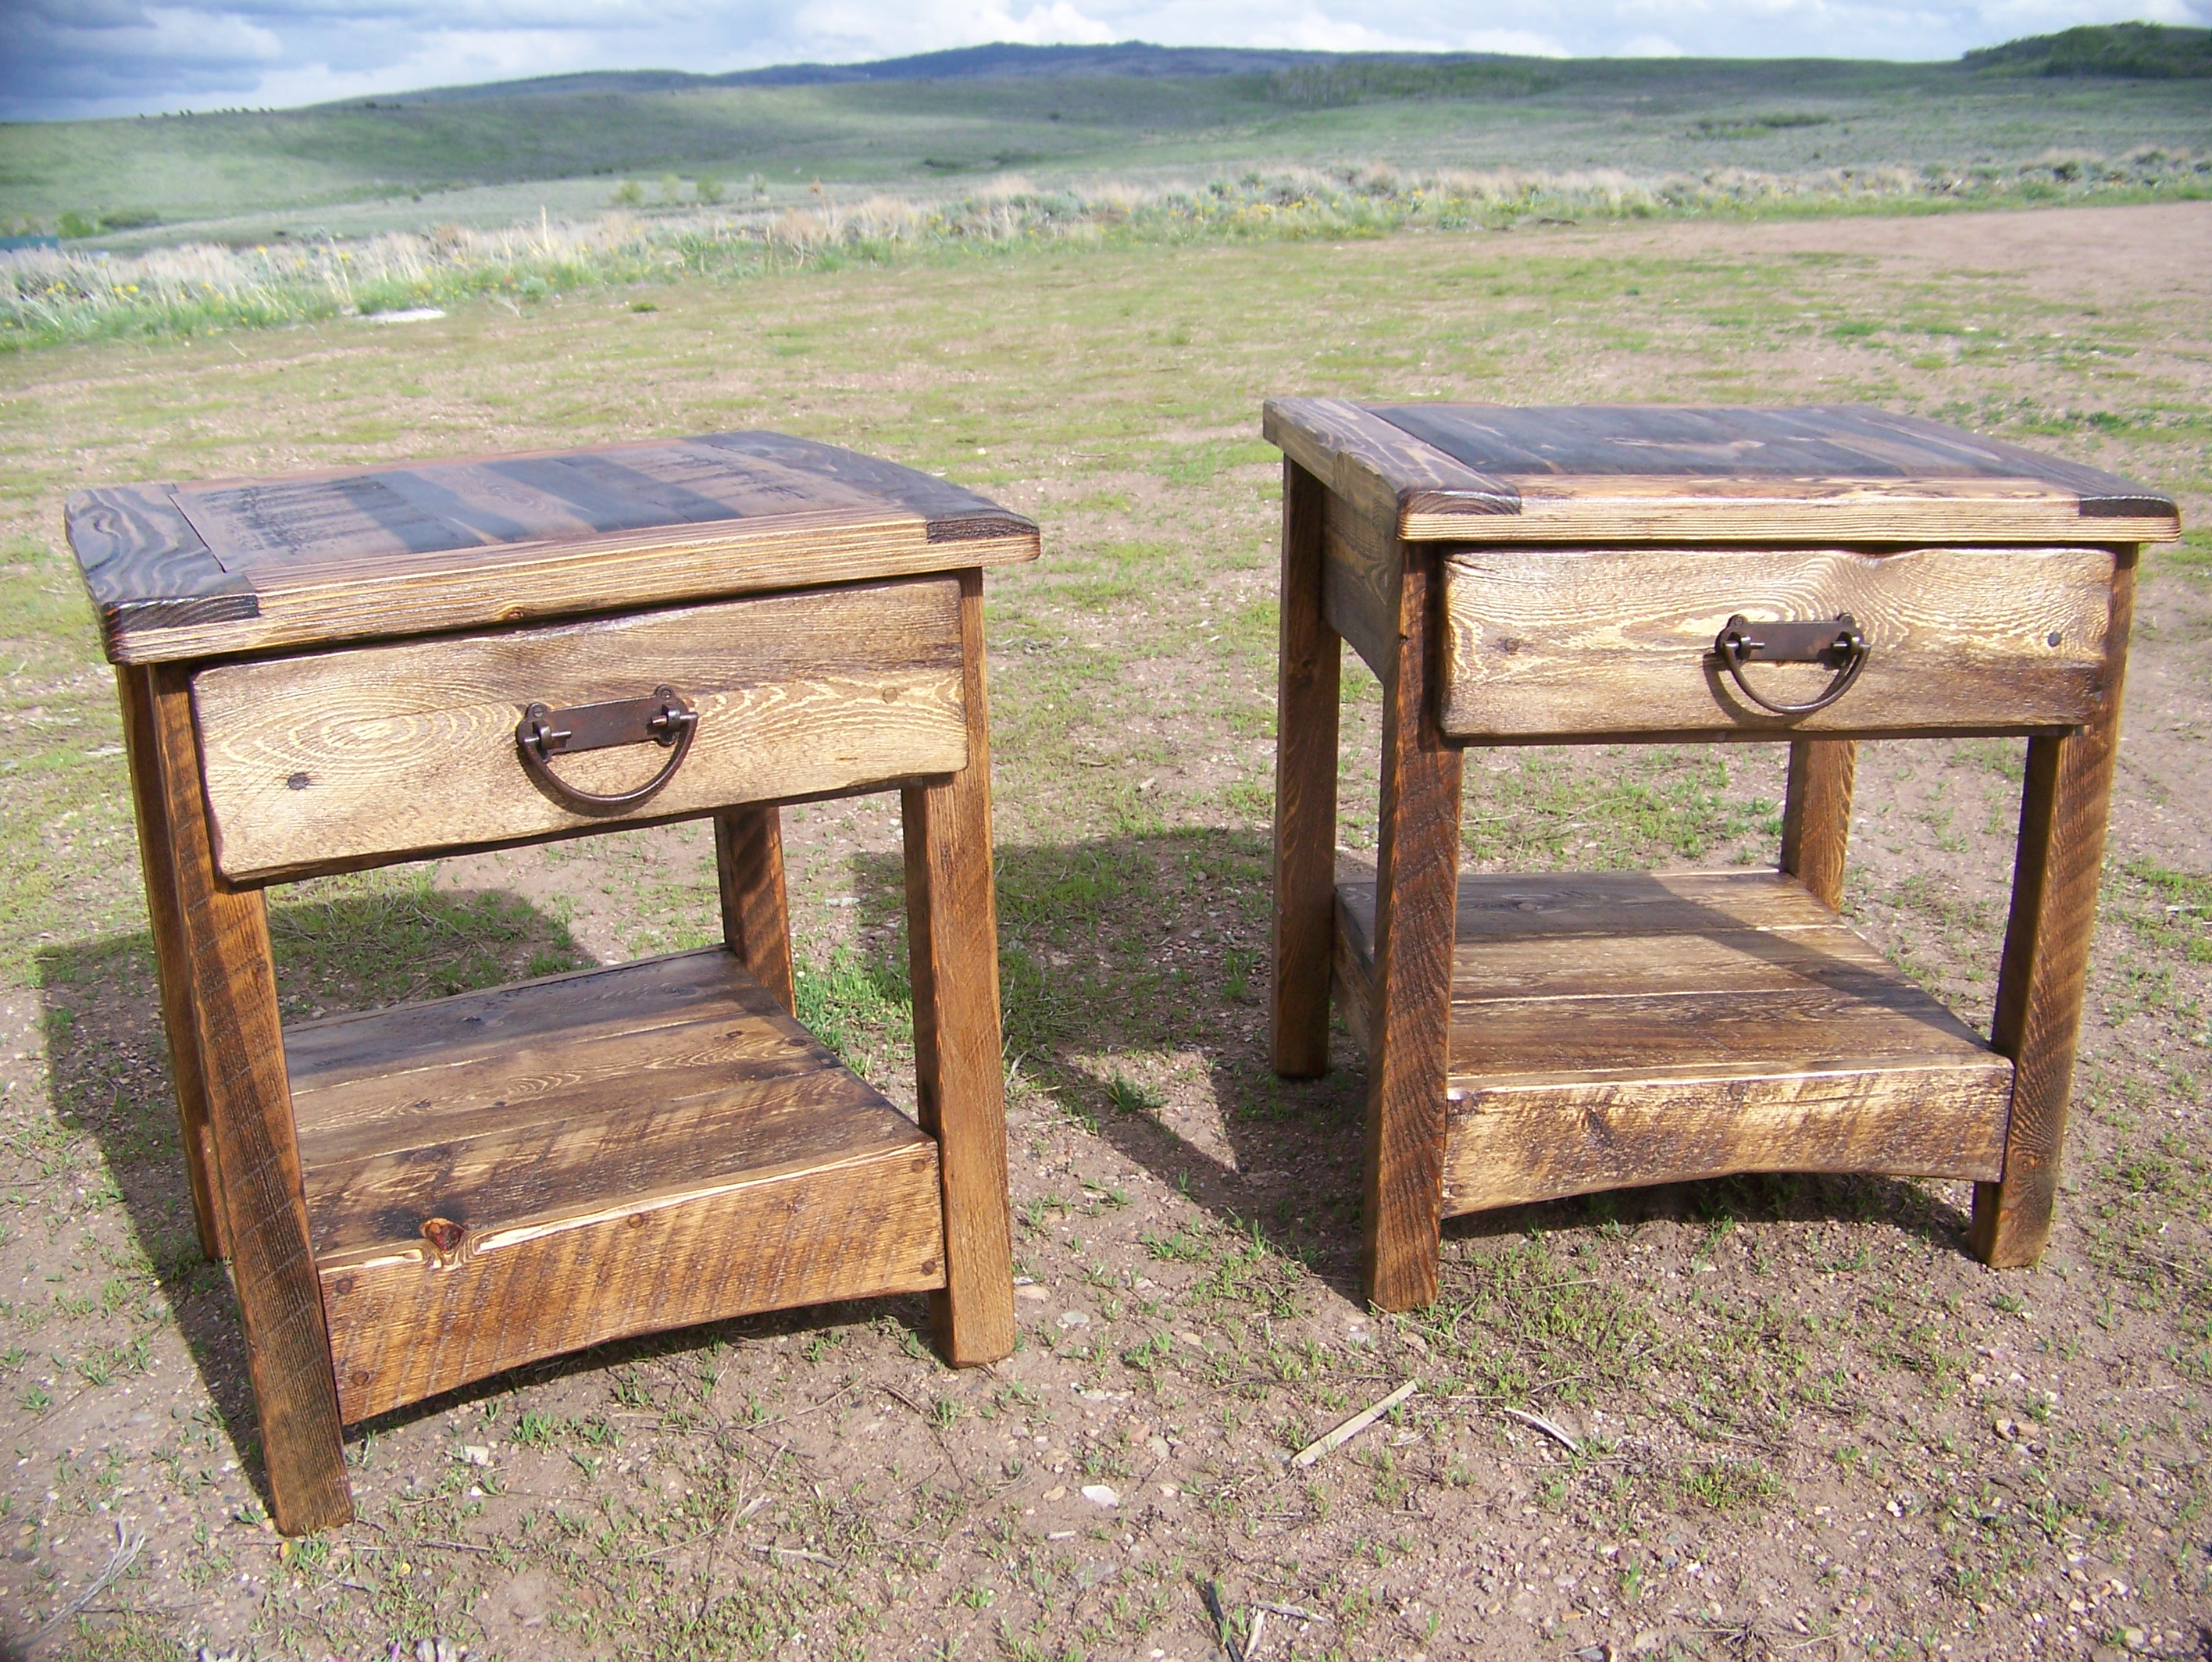 iron crib the perfect real rustic cabin end tables popular and coffee with about which one reclaimed wood table plans sofa toronto diy small dog house clear acrylic side ideas for